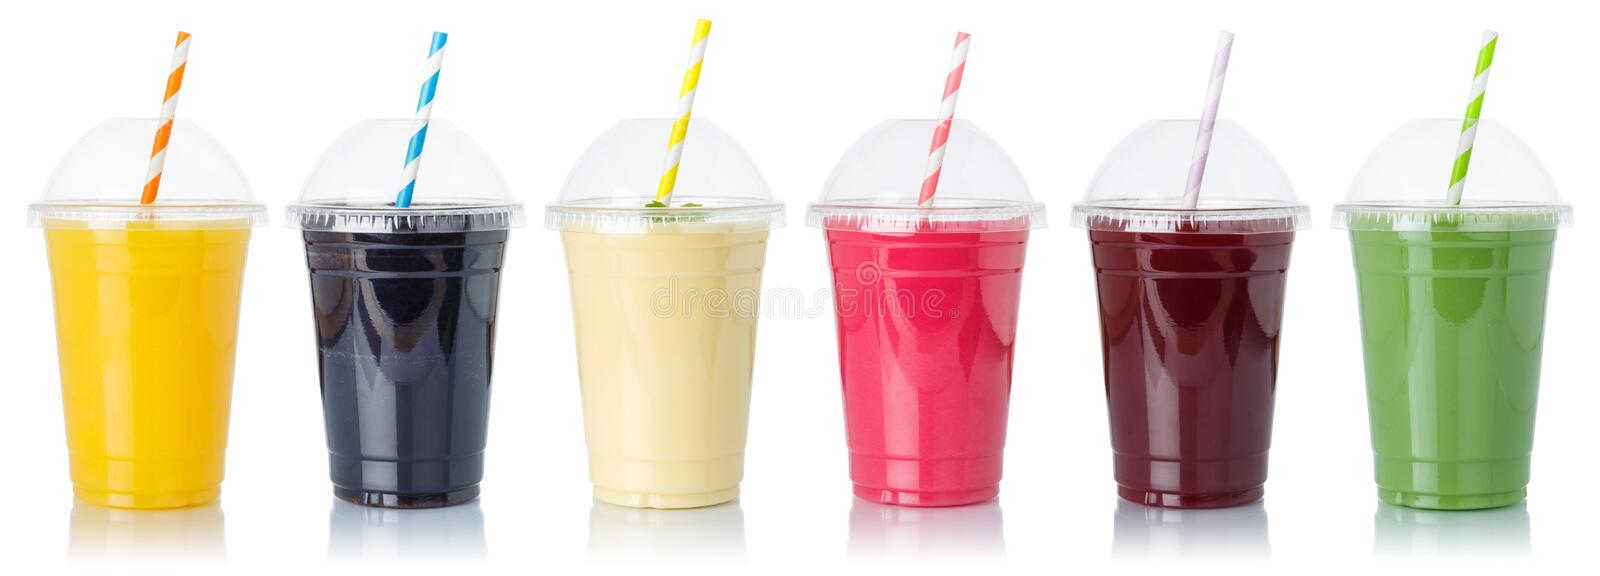 Set of fruit smoothies fruits orange juice straw drink in cups isolated on white royalty free stock images